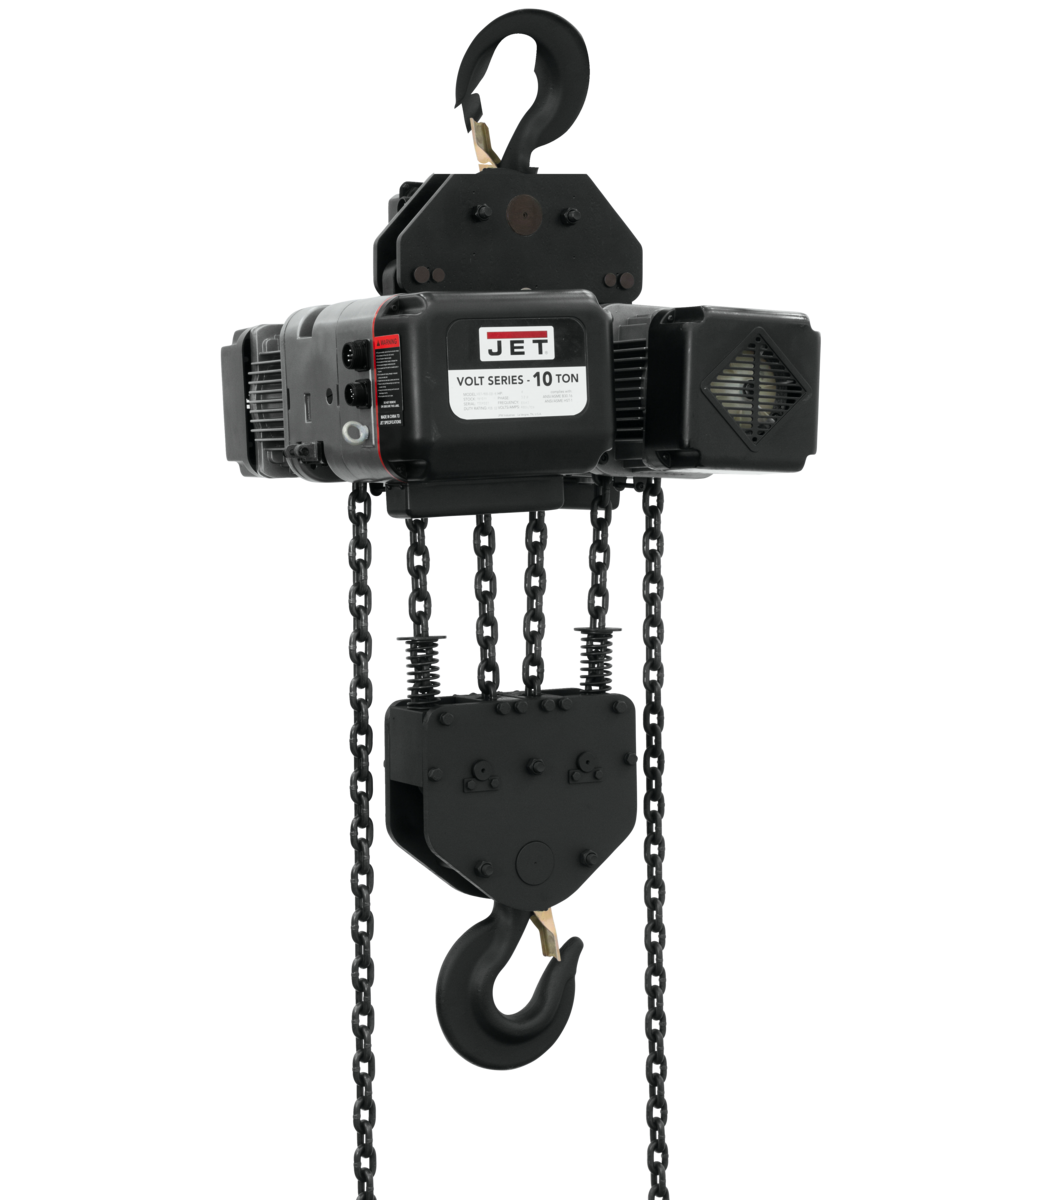 VOLT 10T VARIABLE-SPEED ELECTRIC HOIST  3PH 460V 10' LIFT